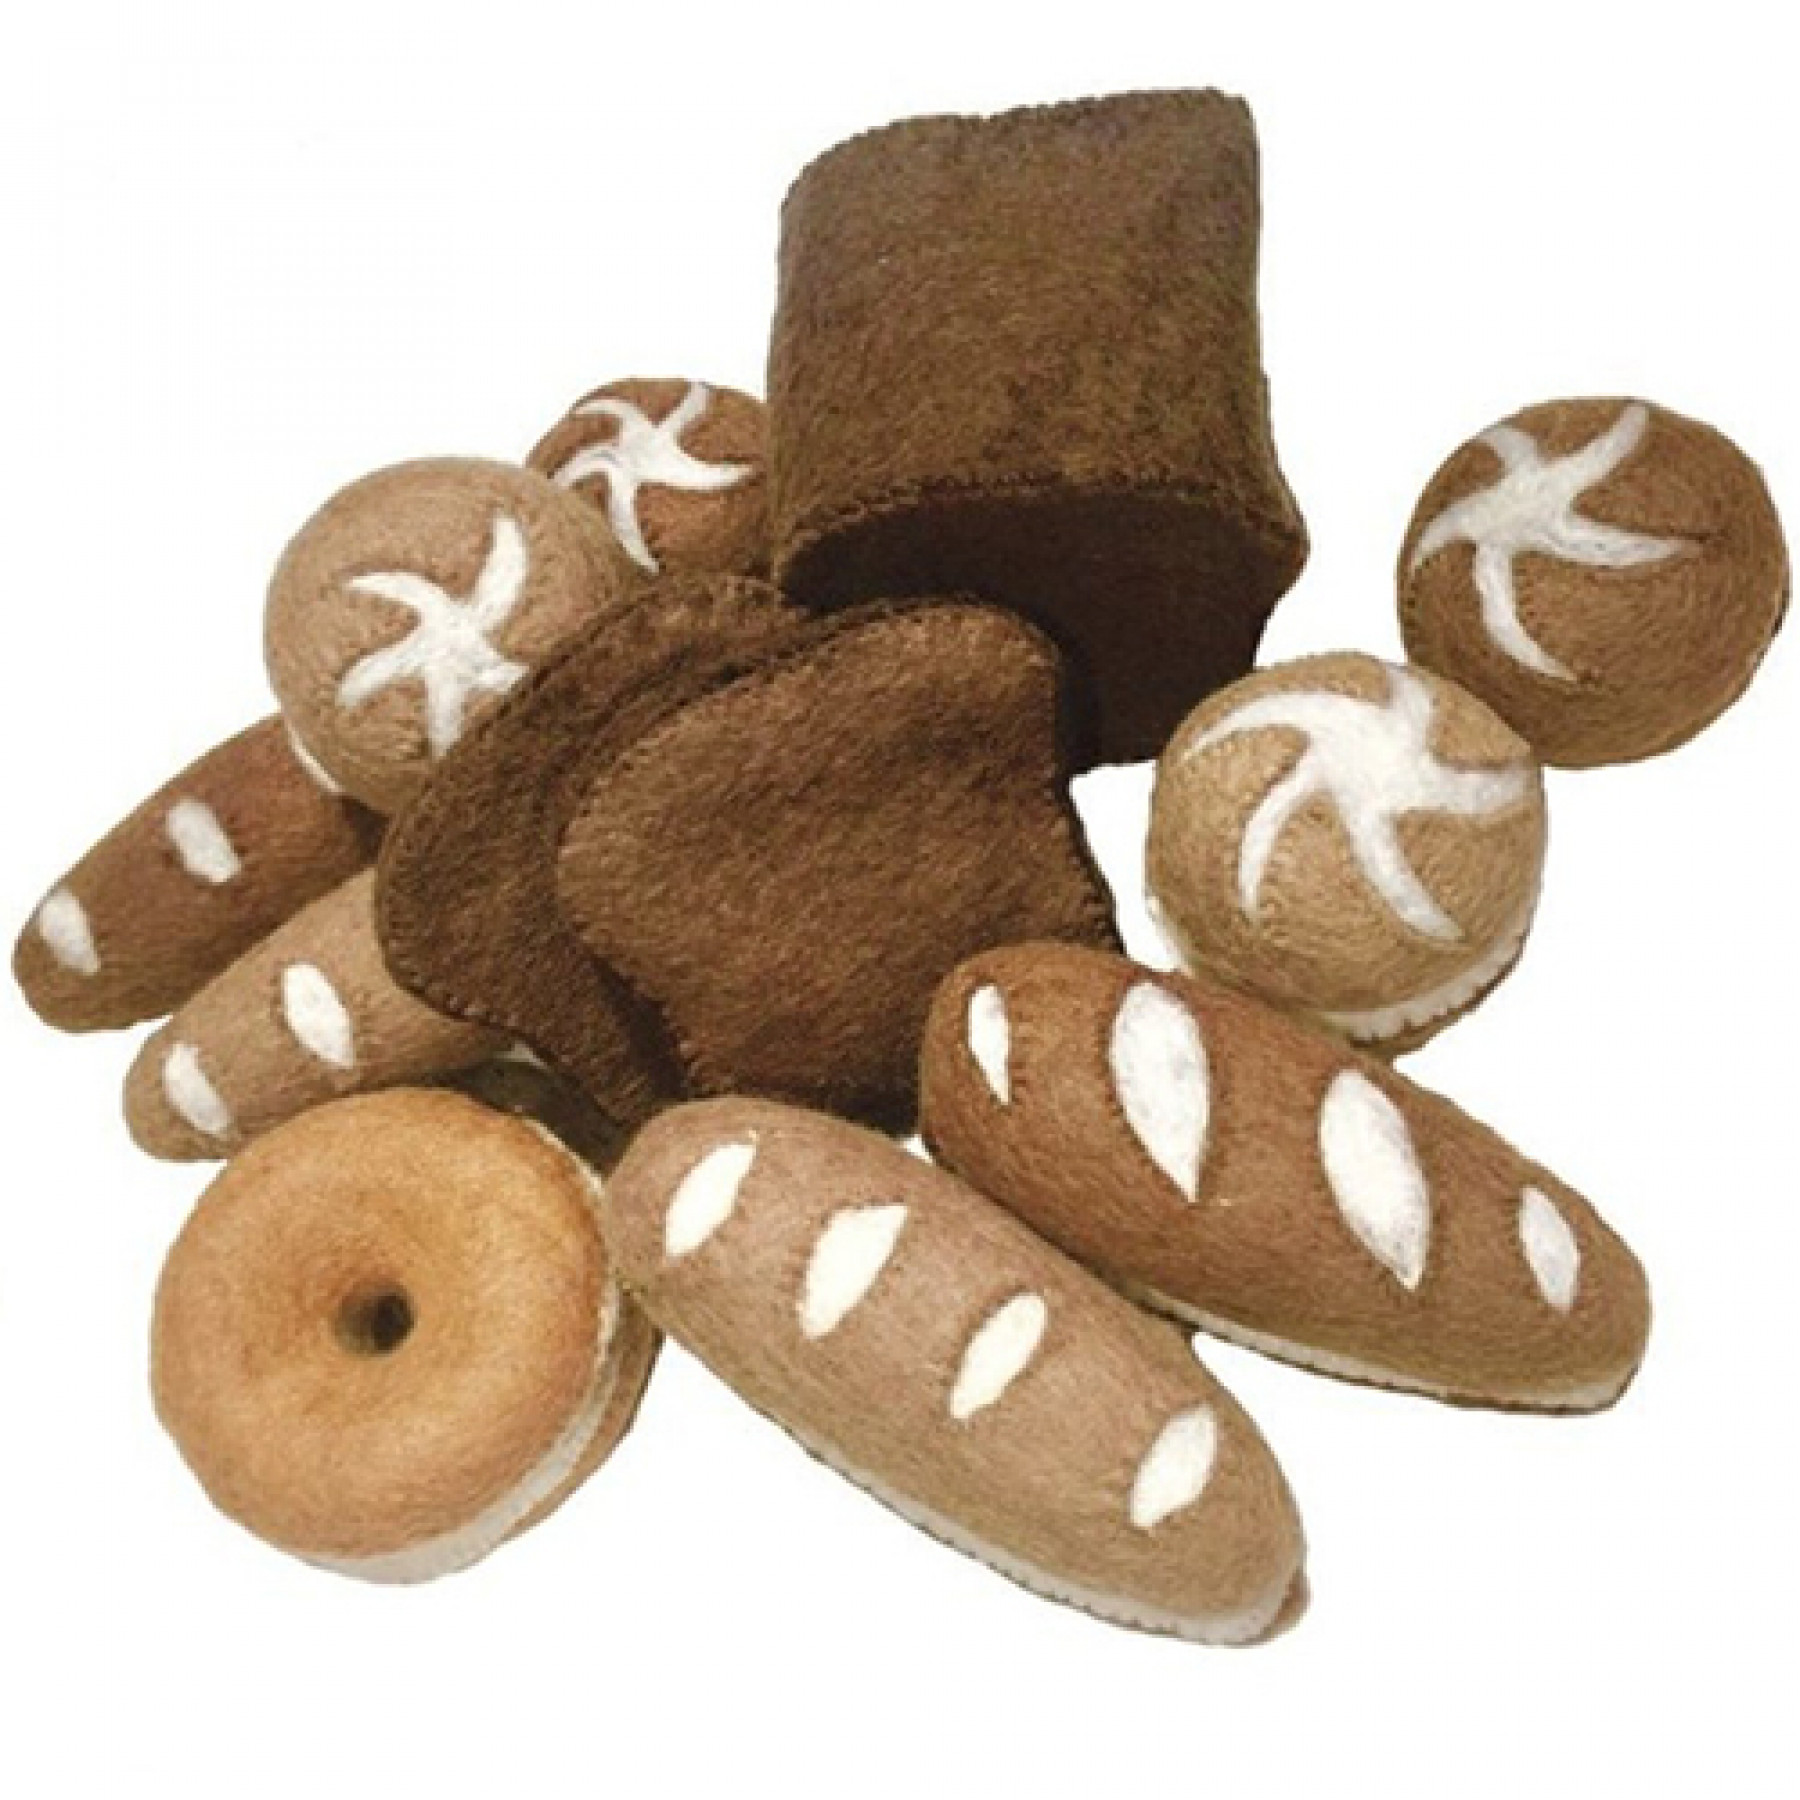 papoose toys broodjes - 17-delig | ilovespeelgoed.nl